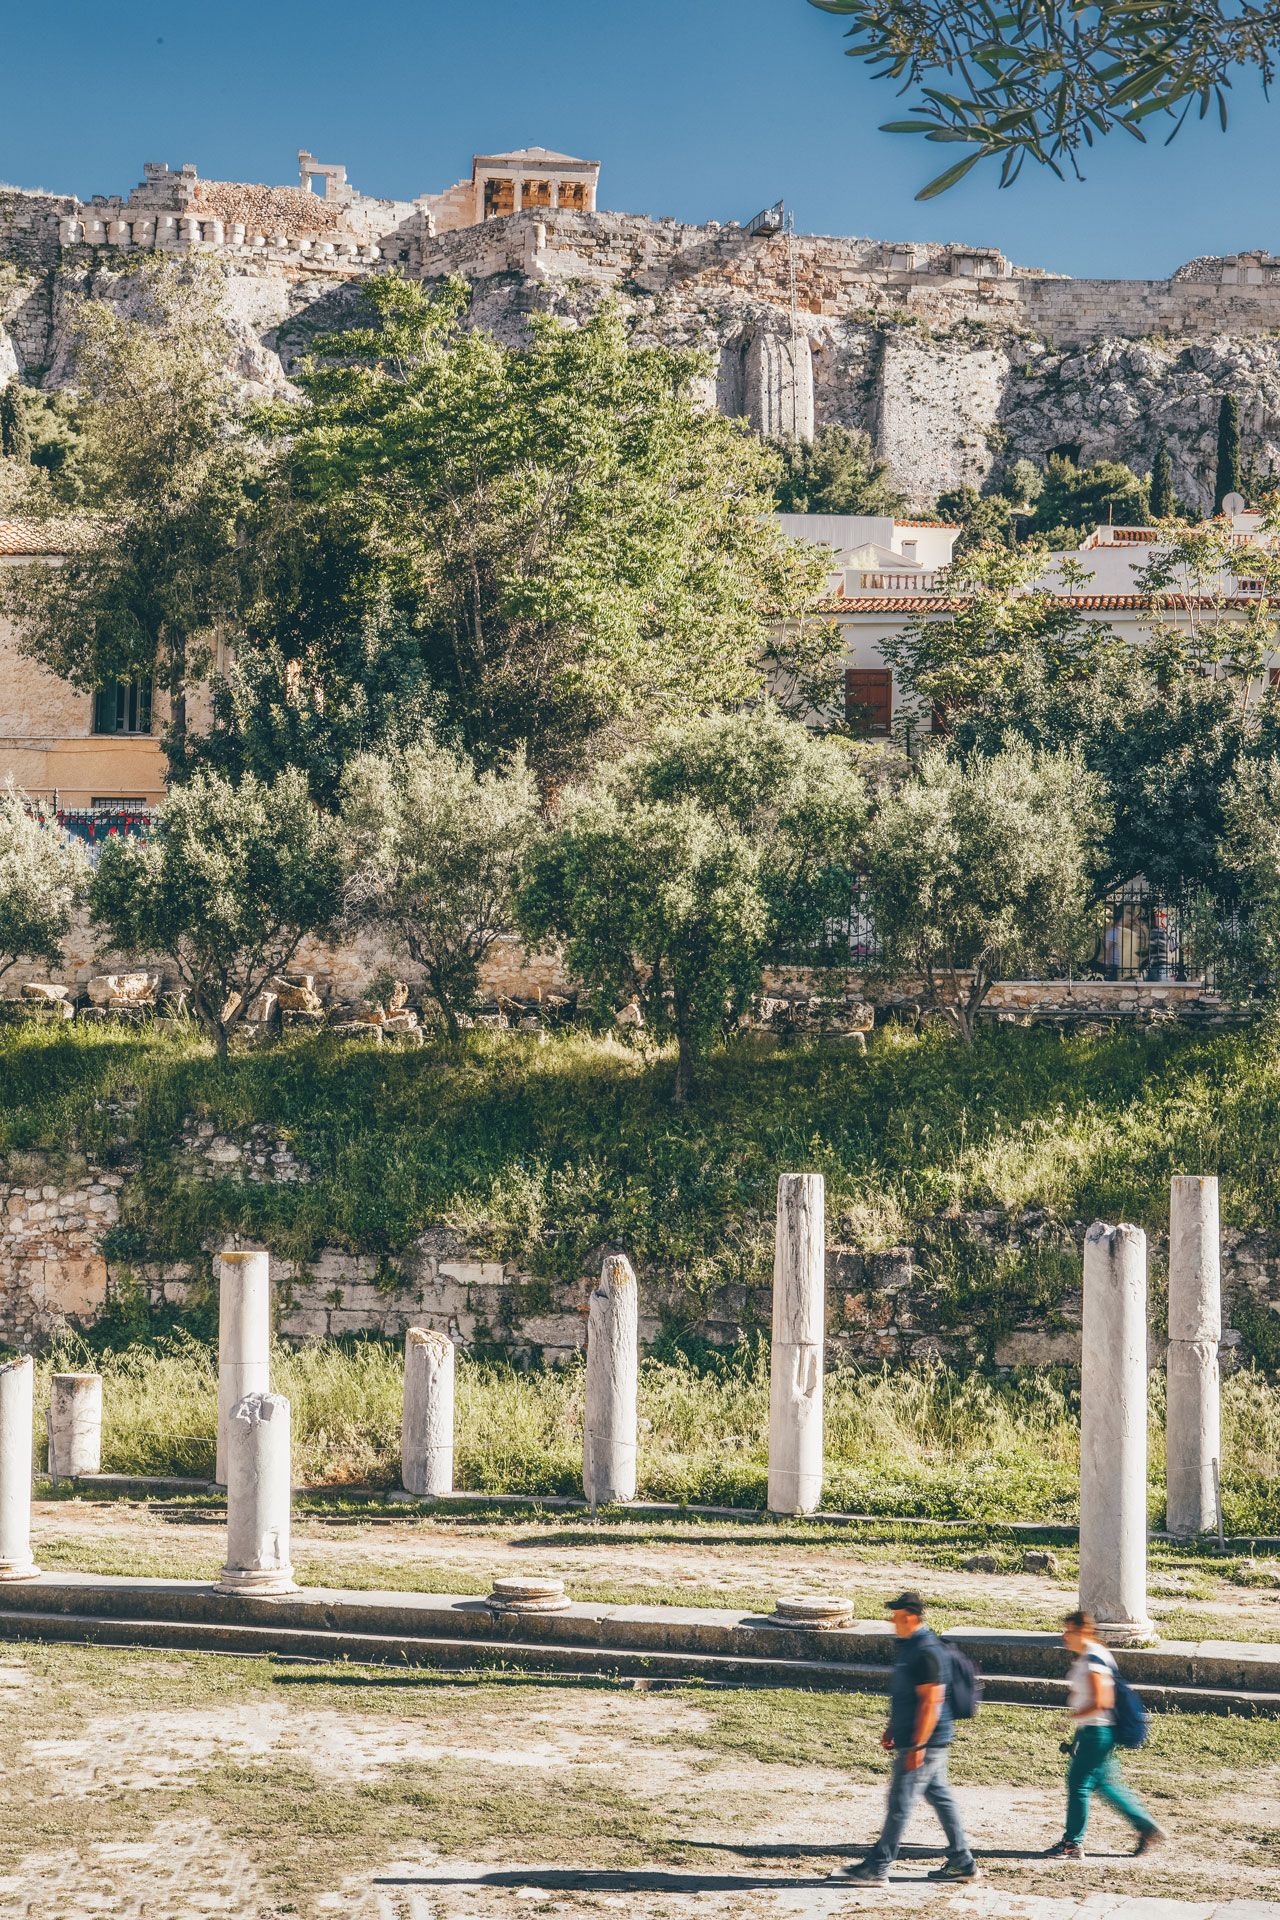 The Roman Agora was the centre of urban life during the Roman occupation of Athens